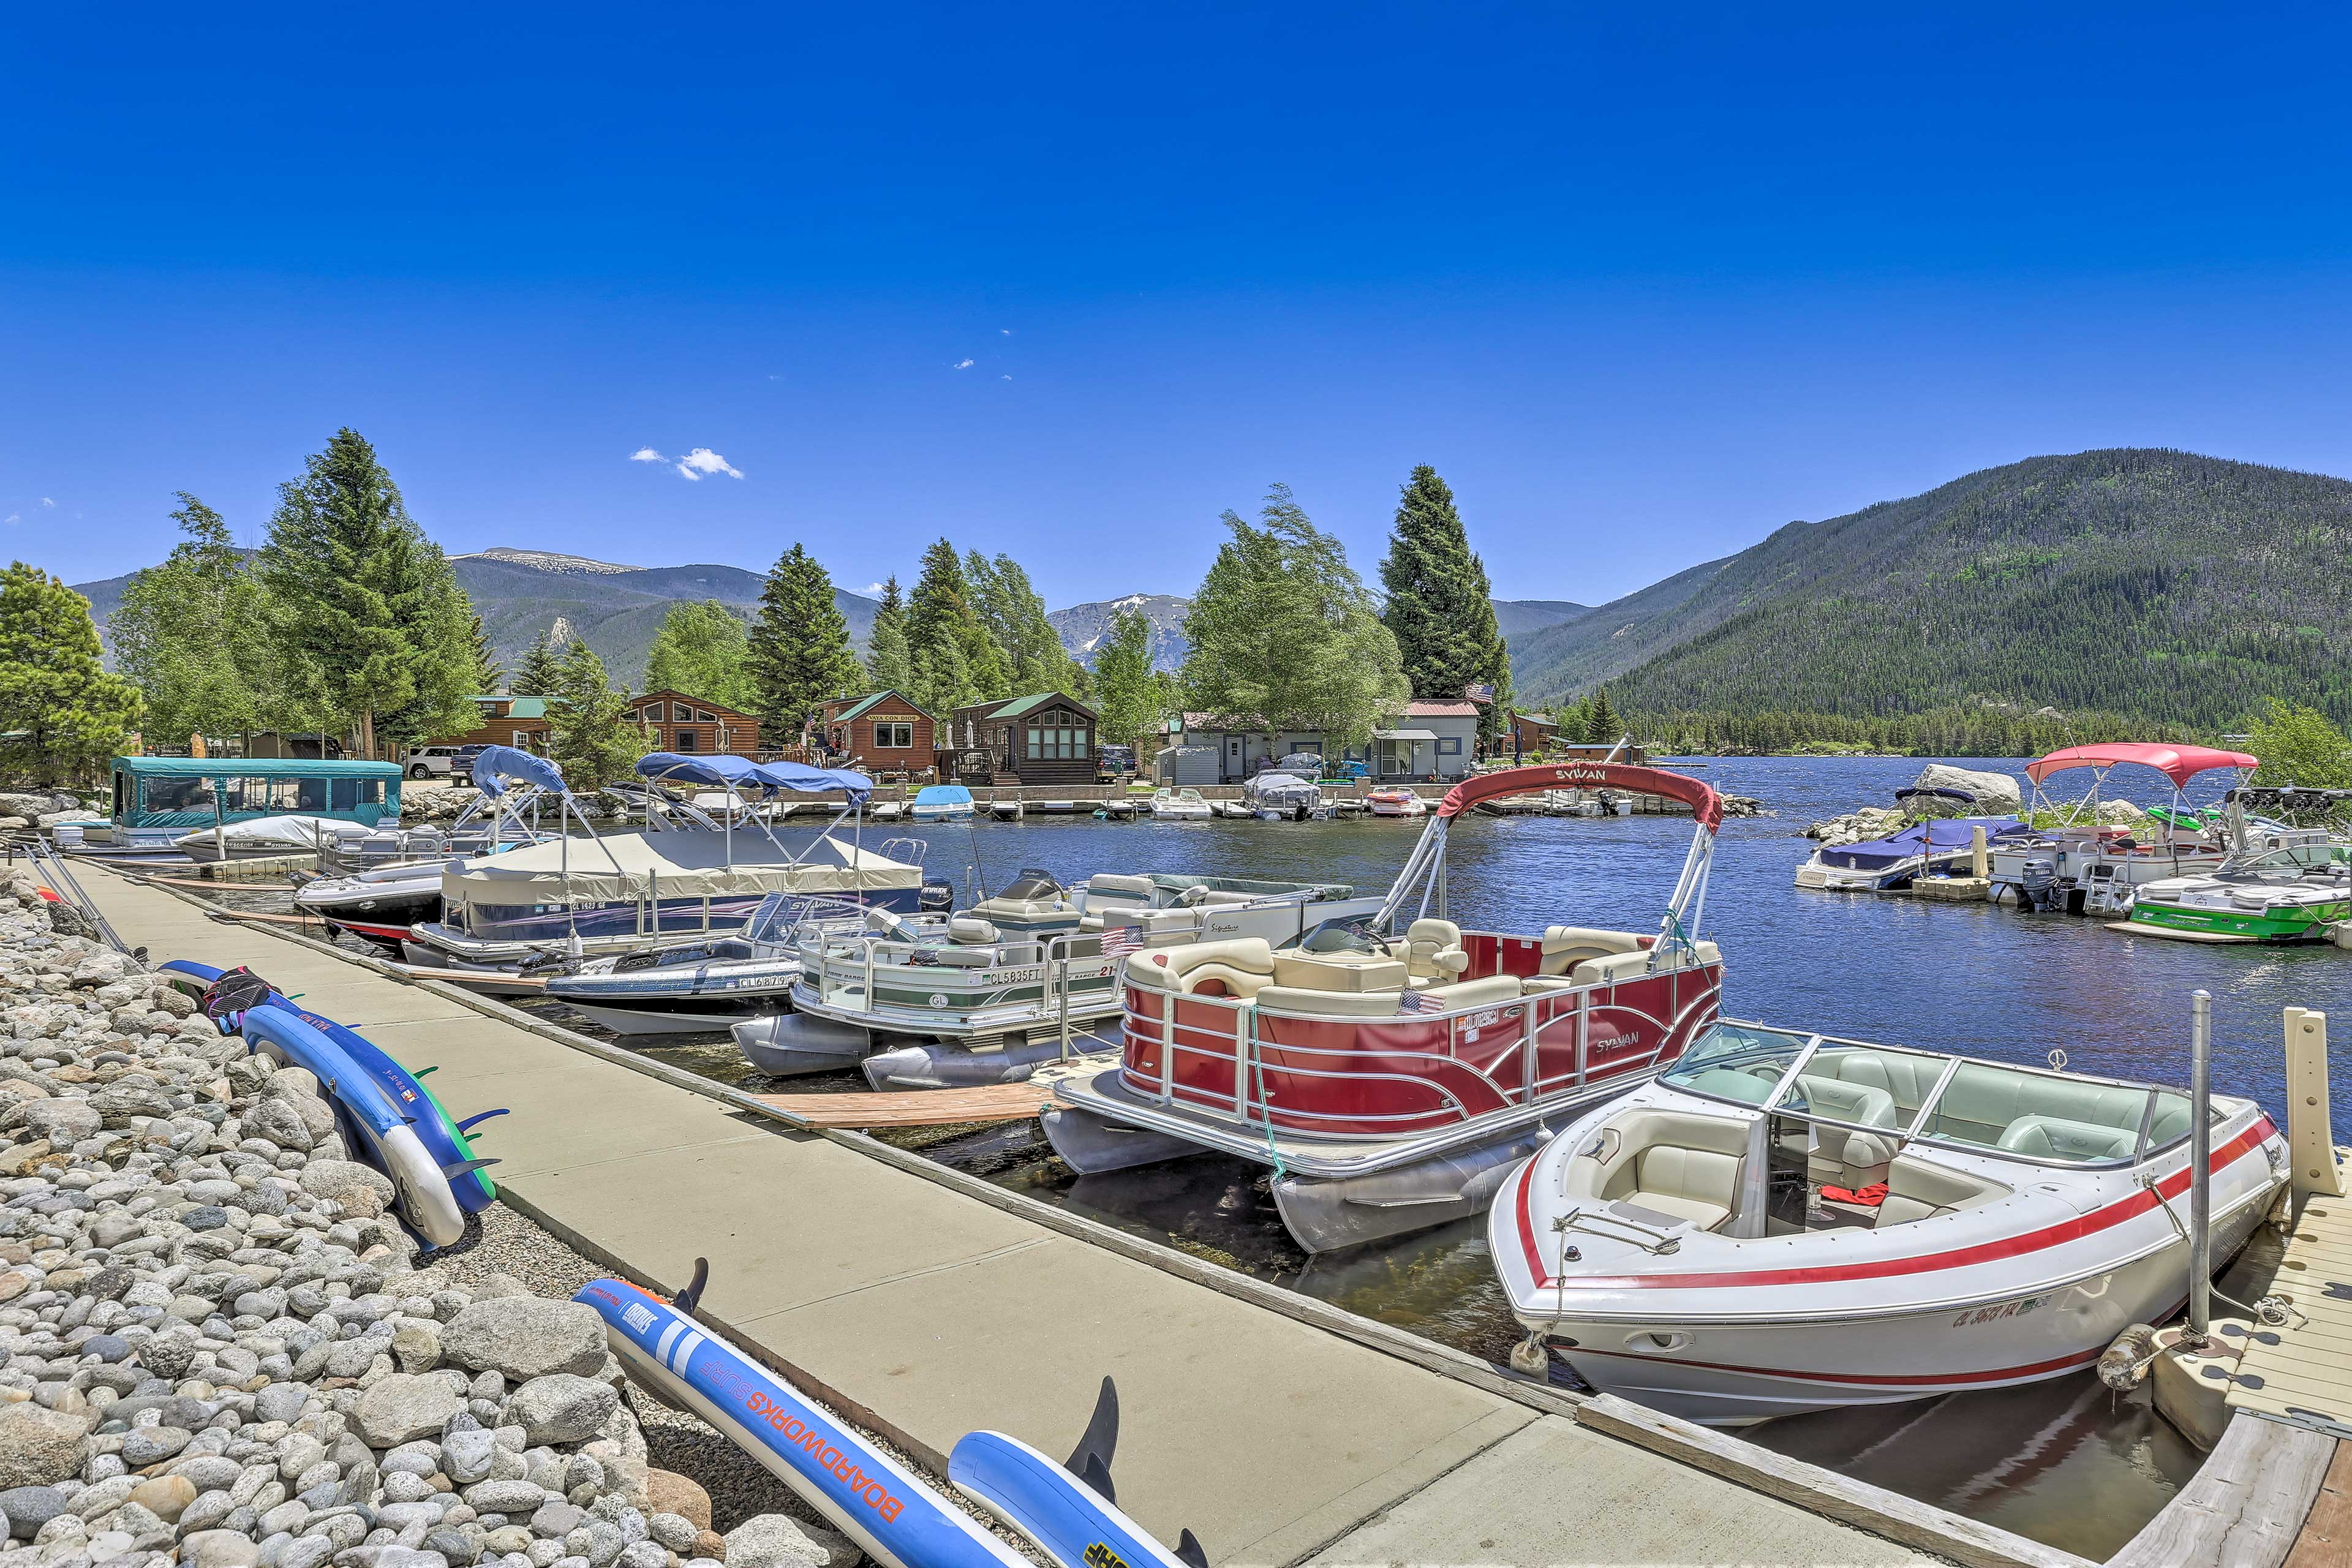 Rent a boat or kayak from one of the marinas along Grand Lake.